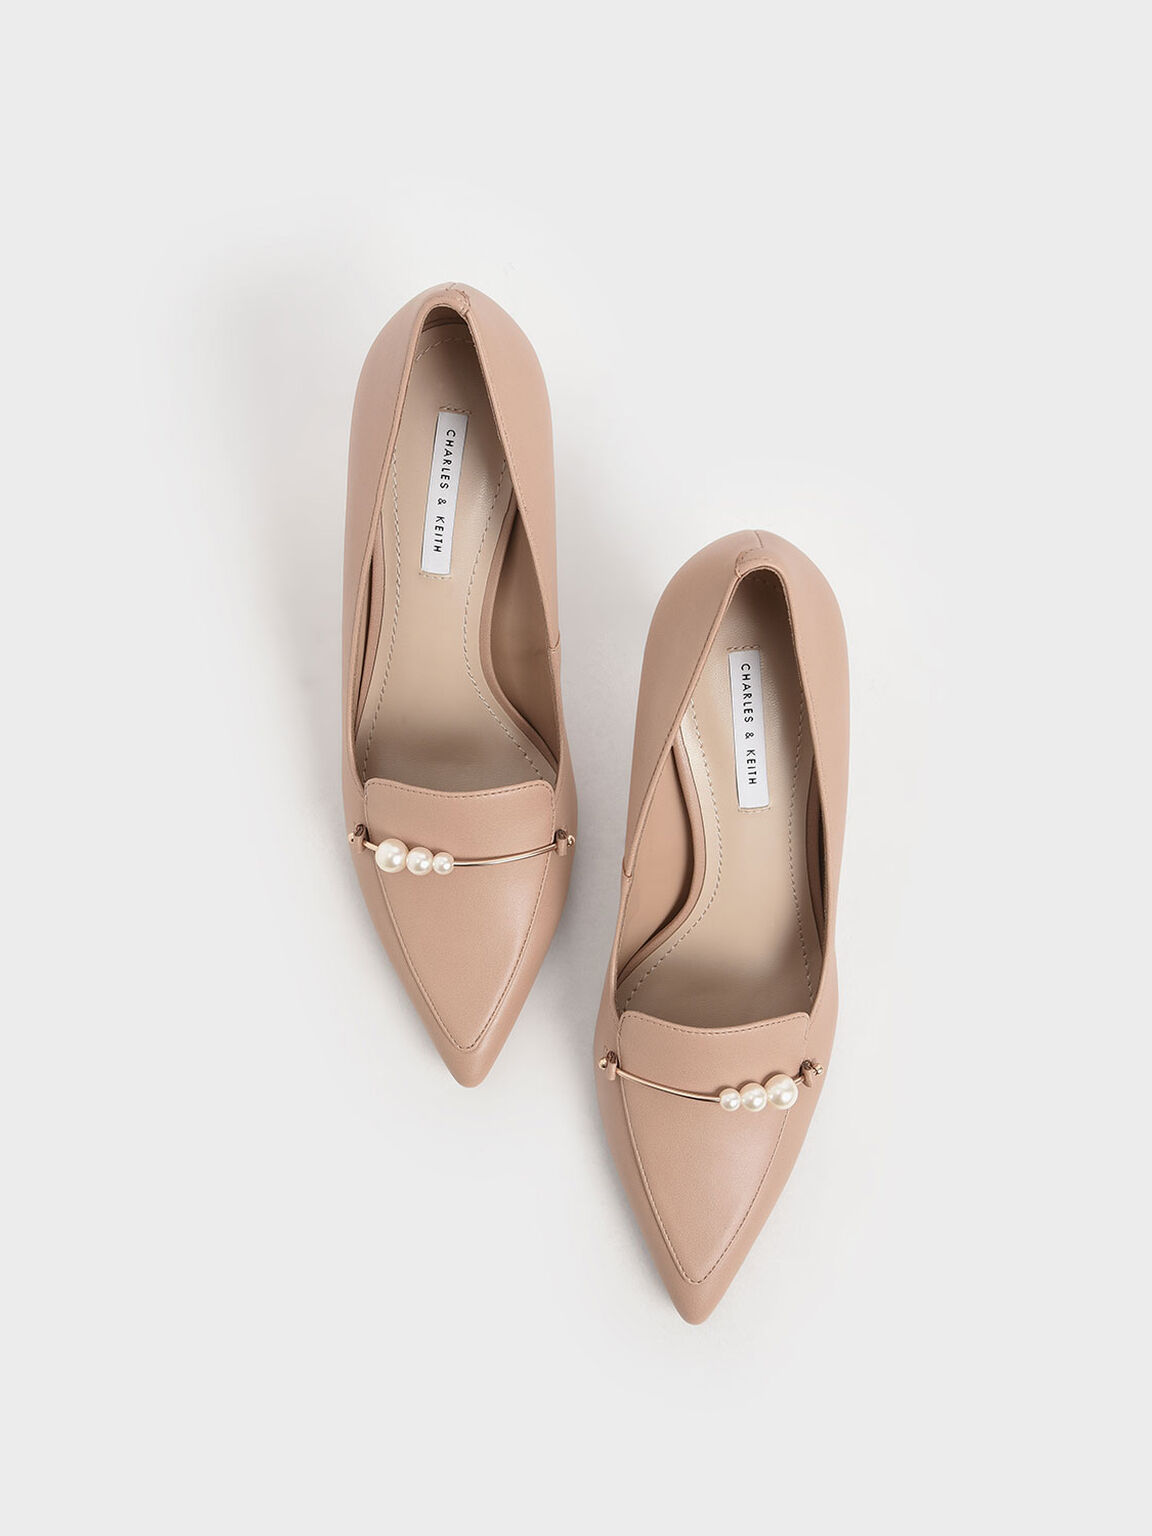 Embellished Loafer Pumps, Nude, hi-res